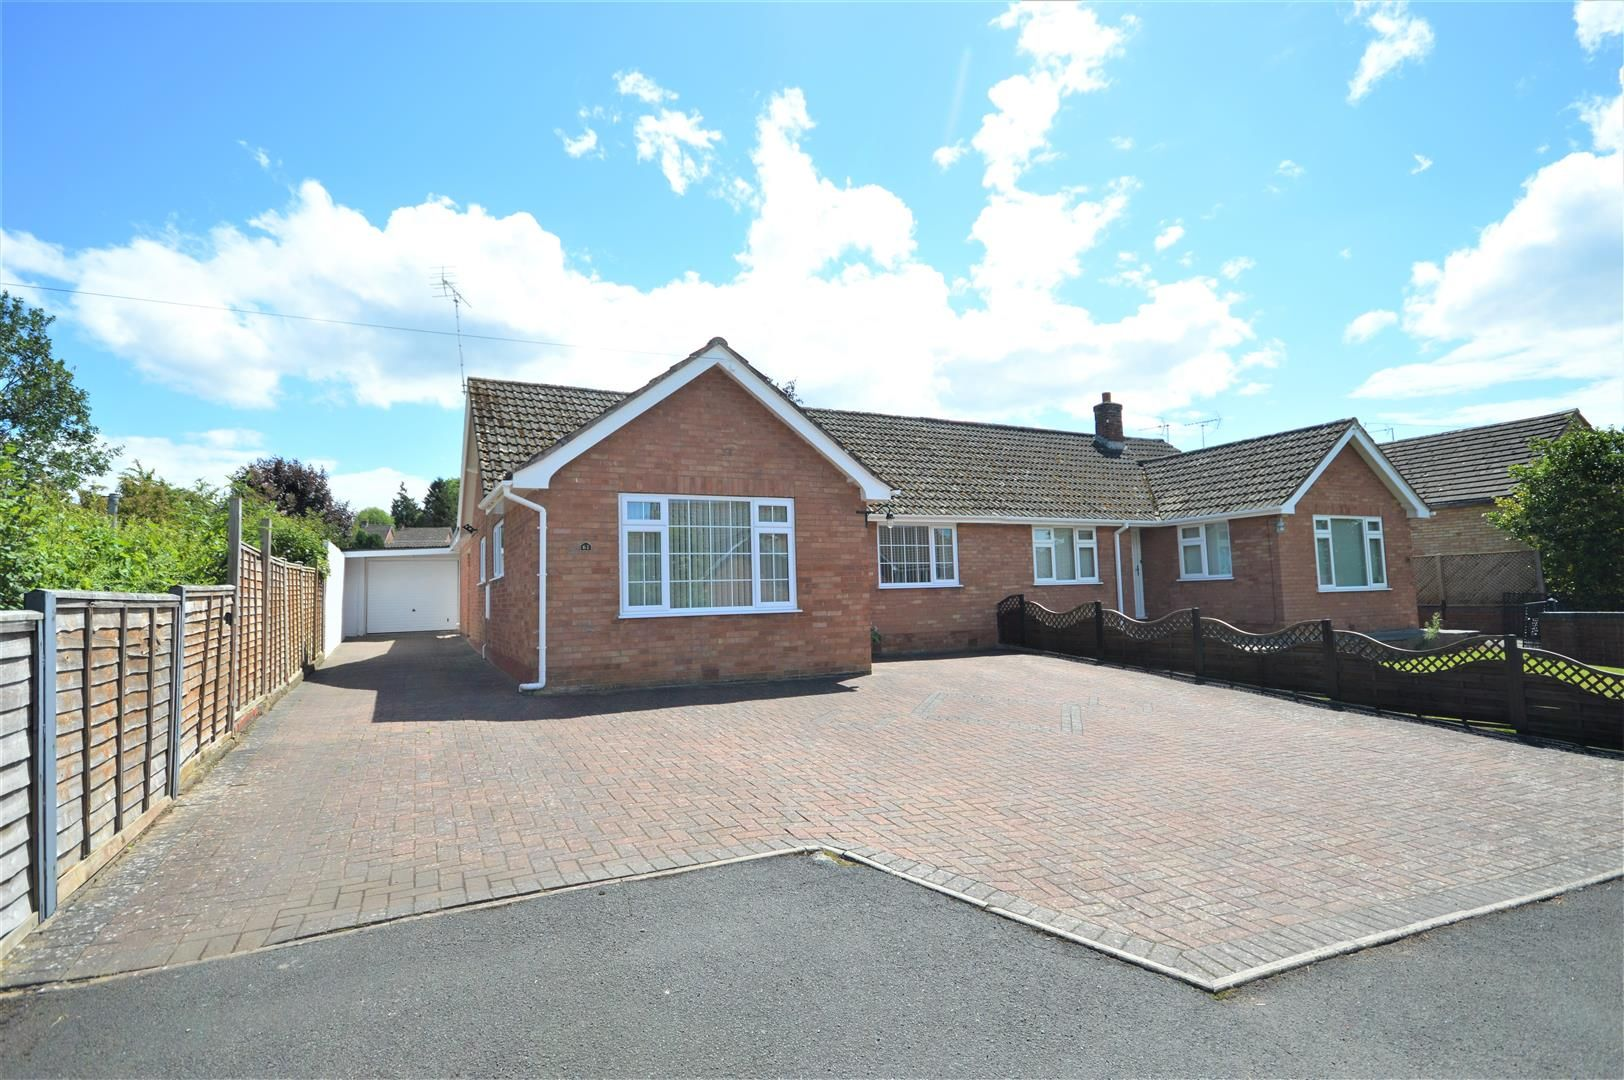 2 bed semi-detached-bungalow for sale in Leominster, HR6